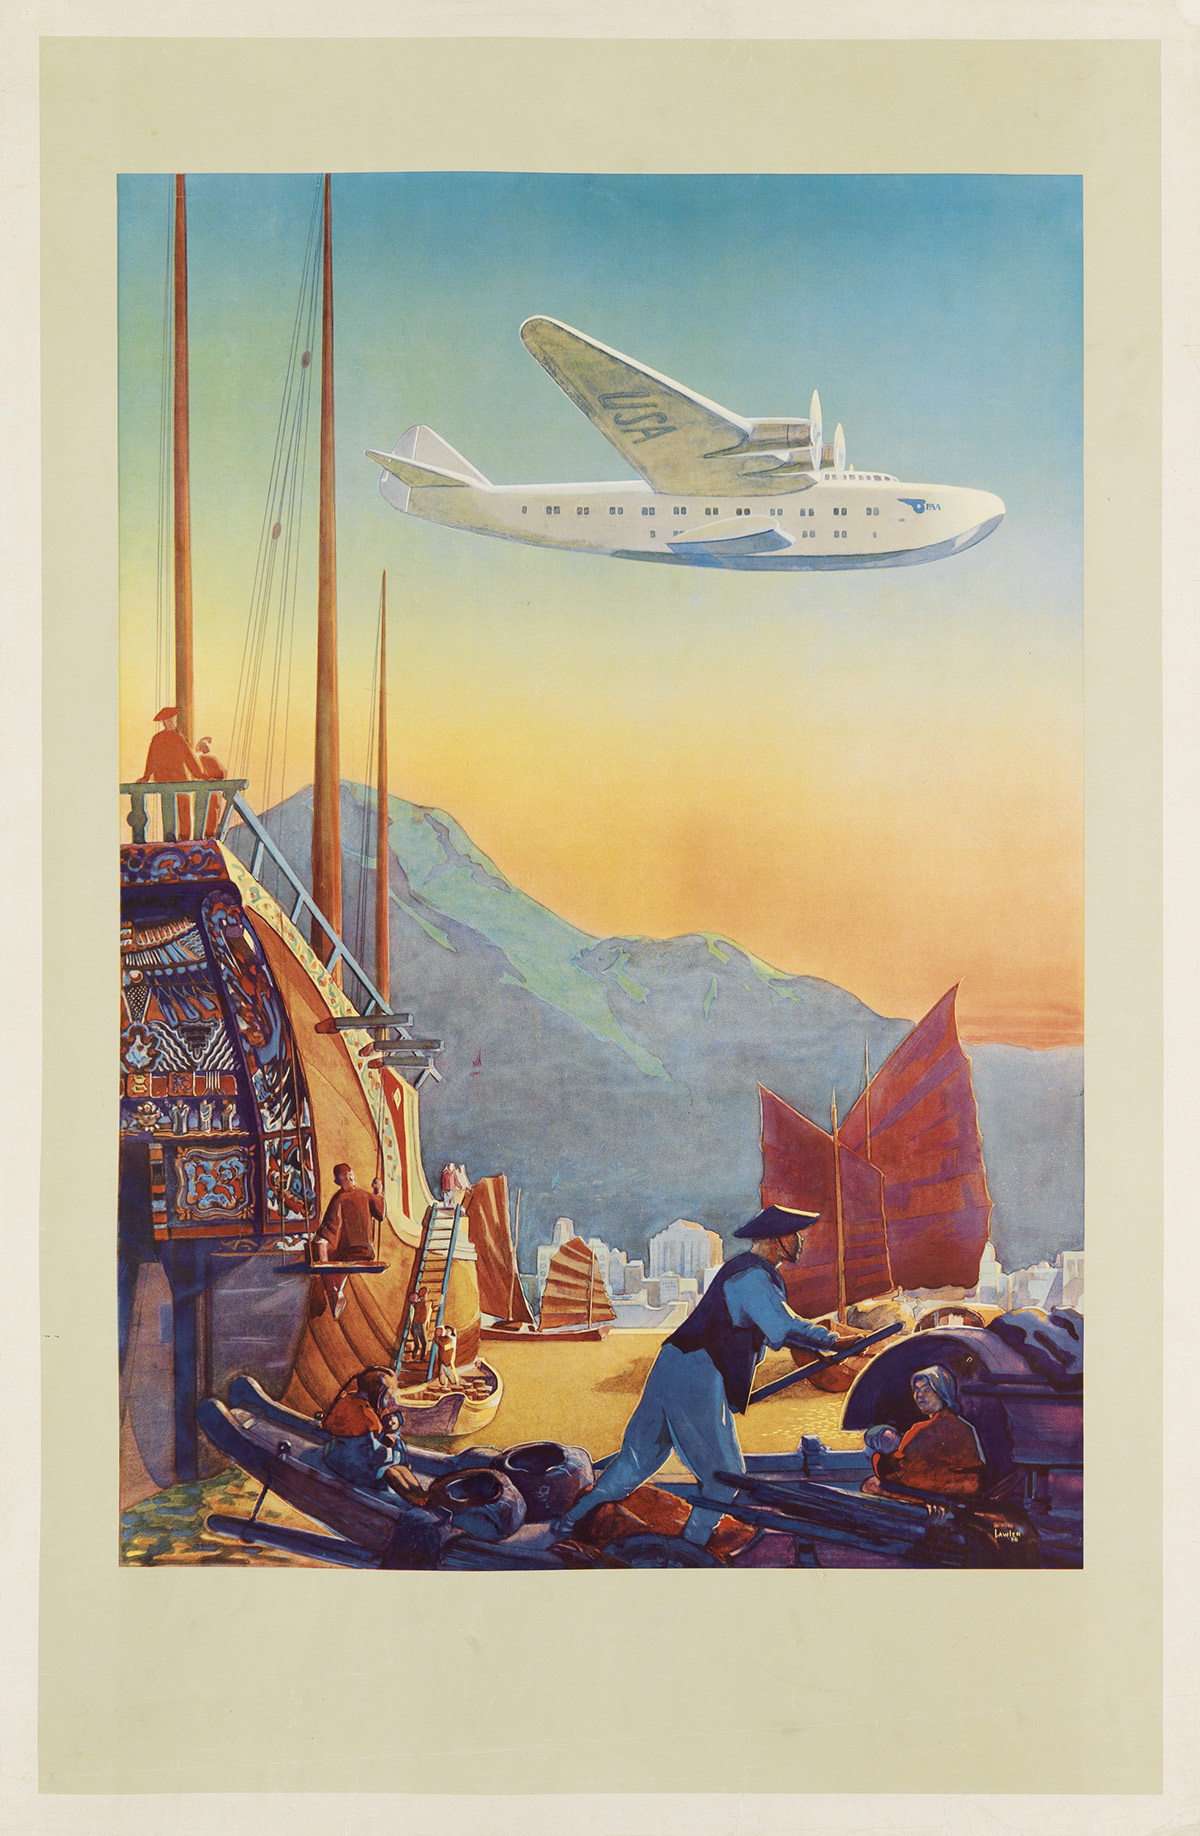 PAUL-GEORGE-LAWLER-(DATES-UNKNOWN)-[ACROSS-THE-PACIFIC]-1938